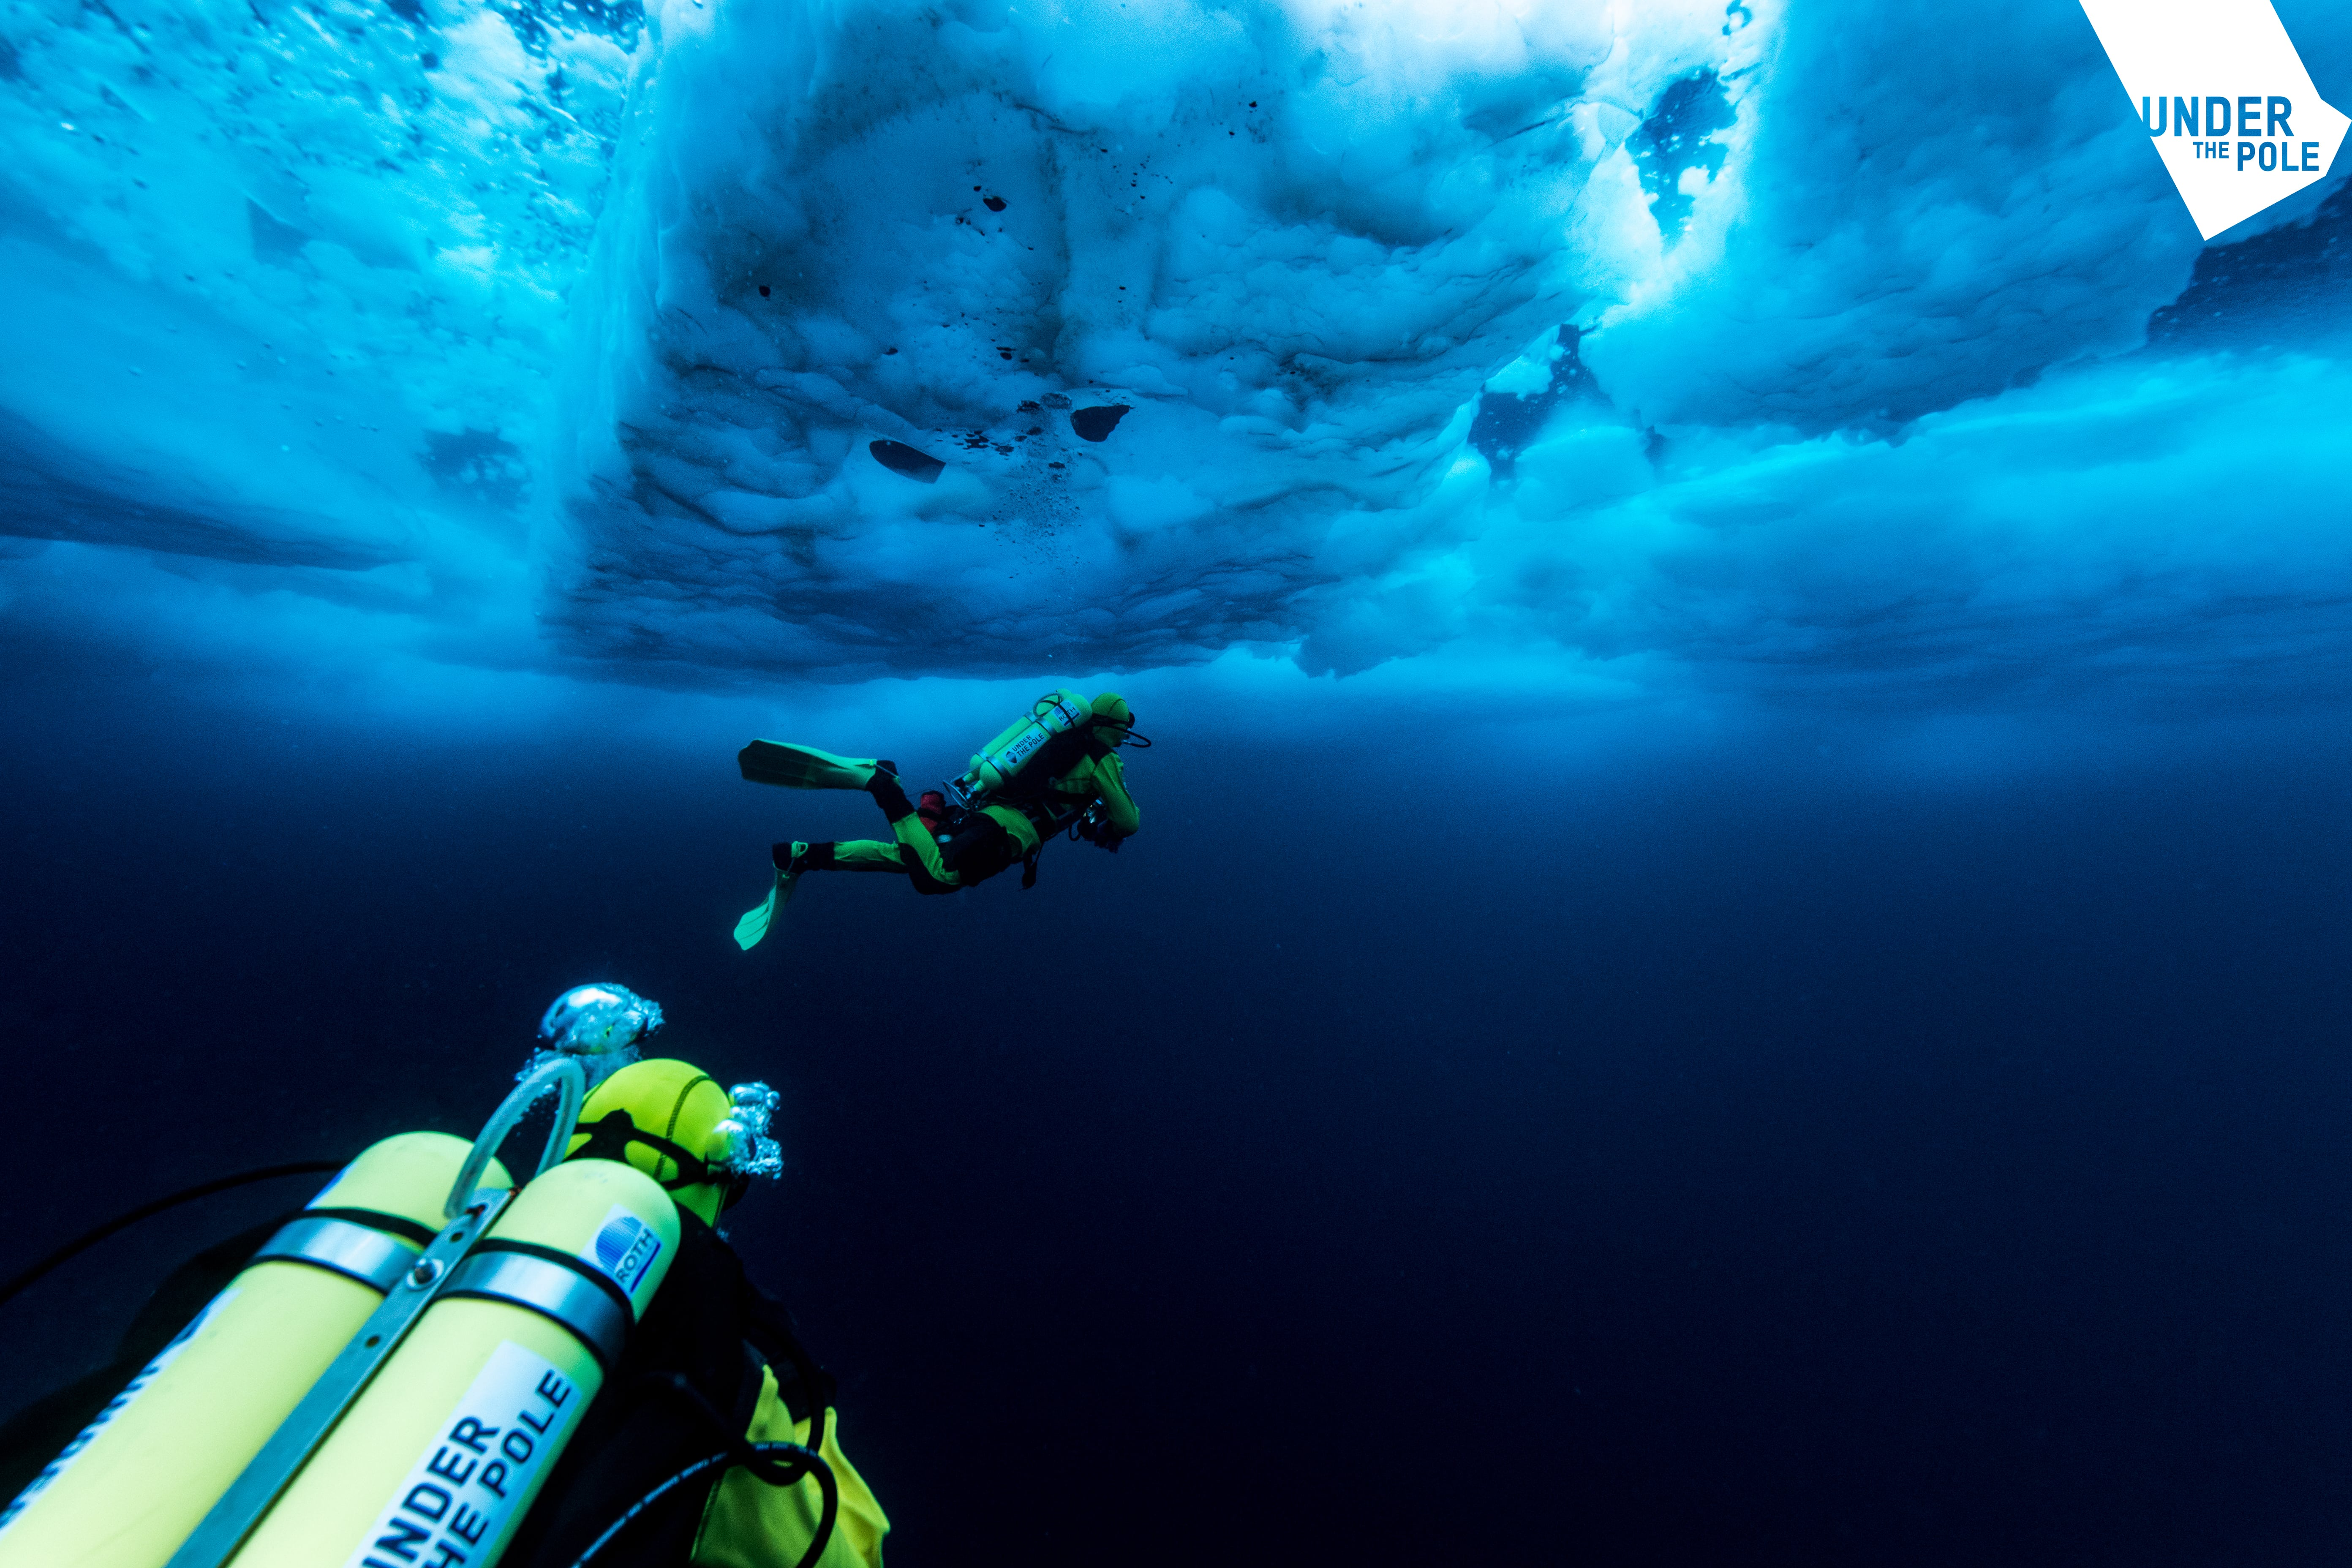 Divers go deeper to uncover the impact of climate change on coral reefs